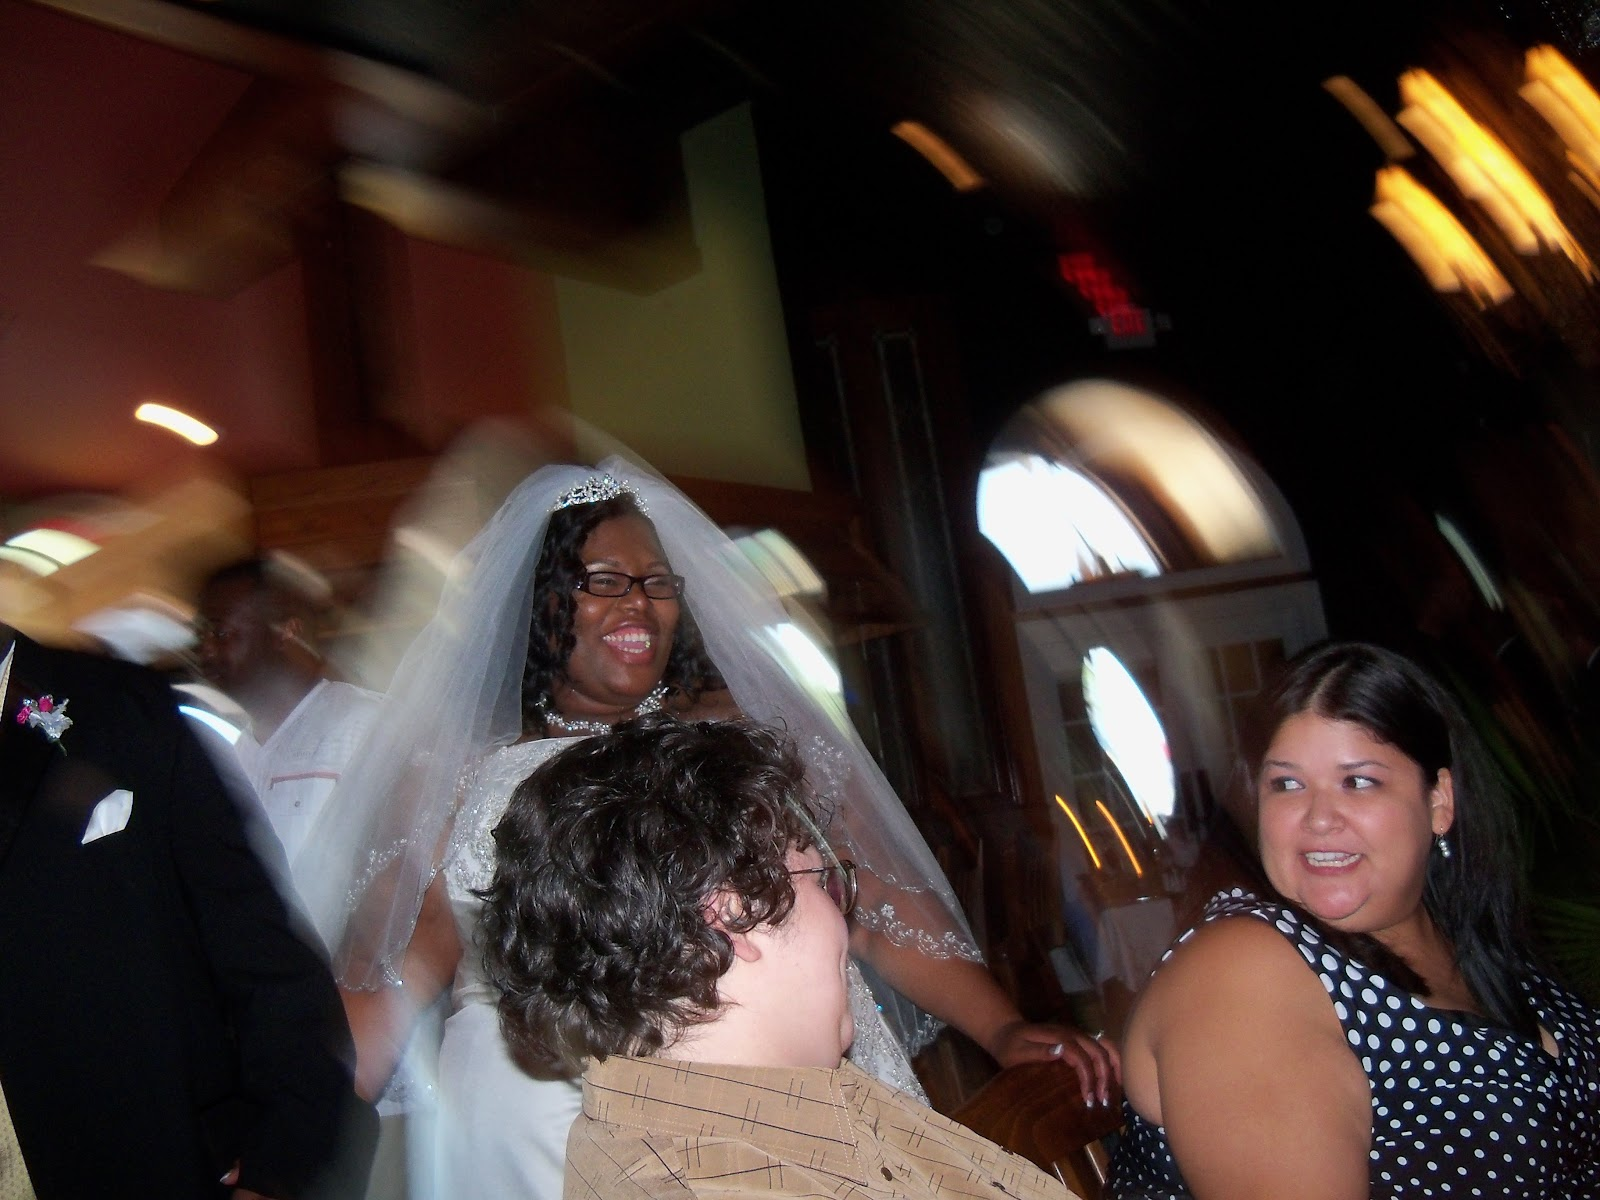 MeChaia Lunn and Clyde Longs wedding - 101_4633.JPG